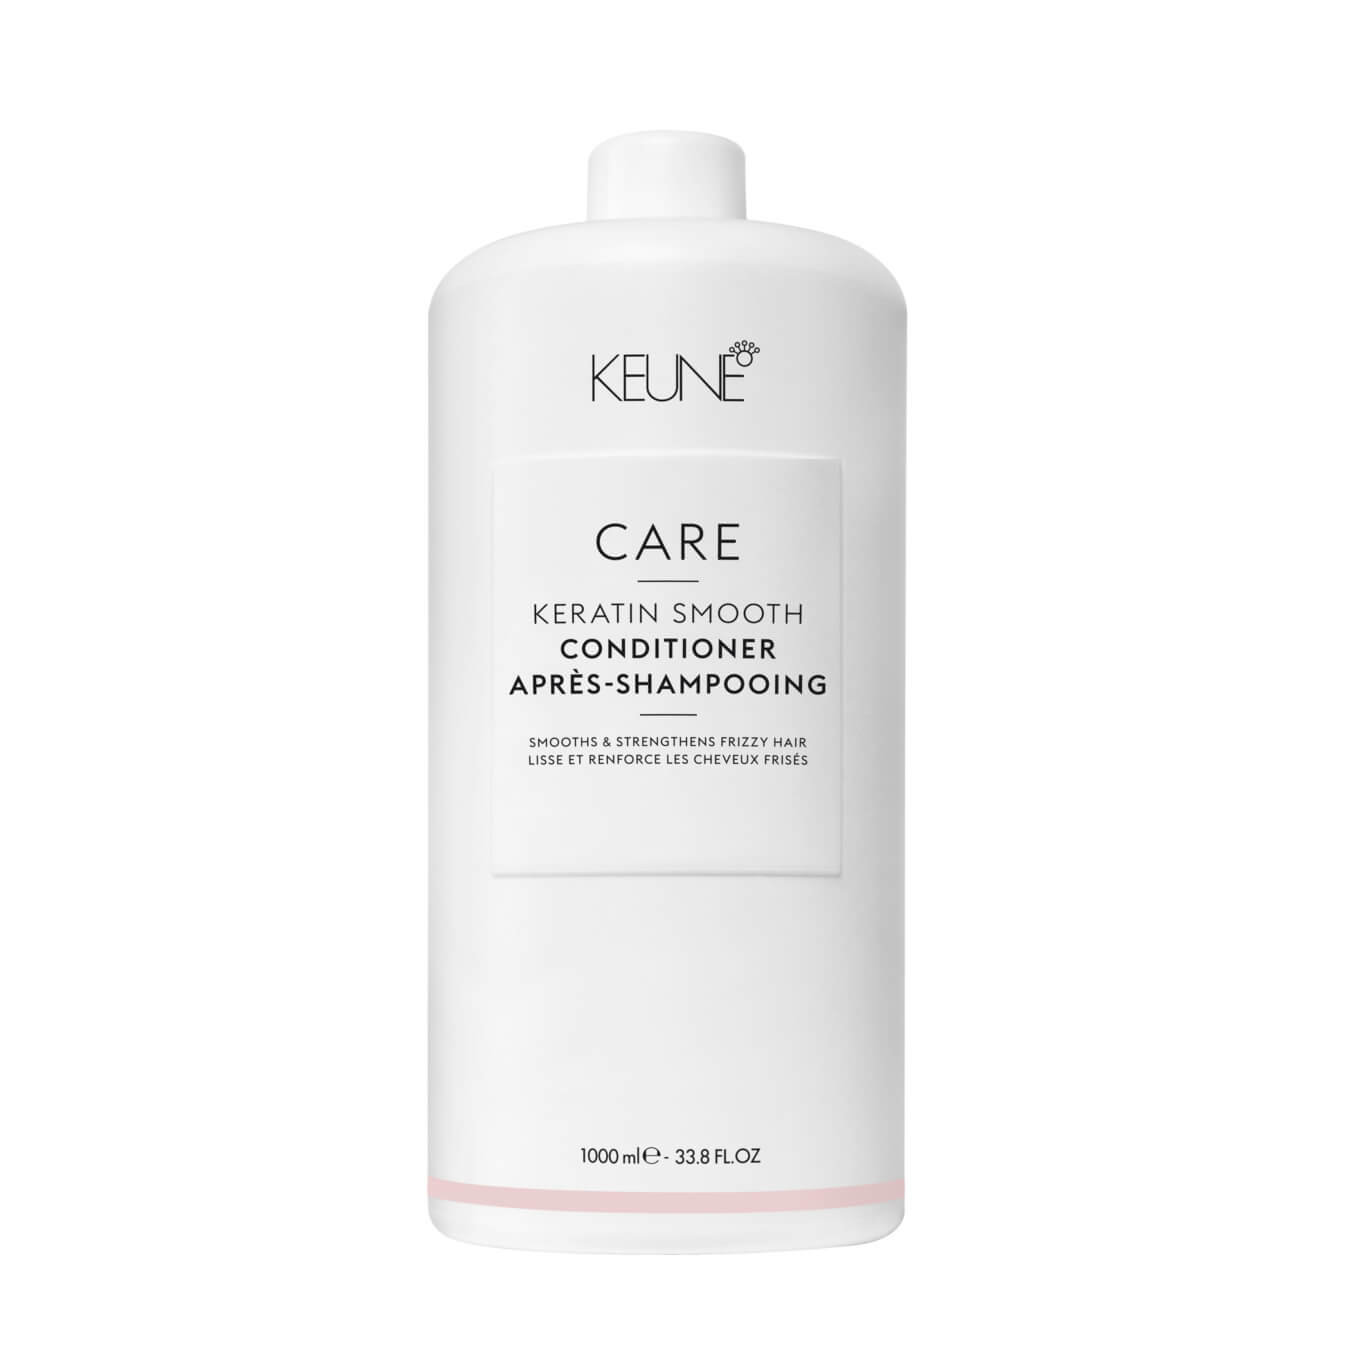 Koop Keune Care Keratin Smooth Conditioner 1000ml